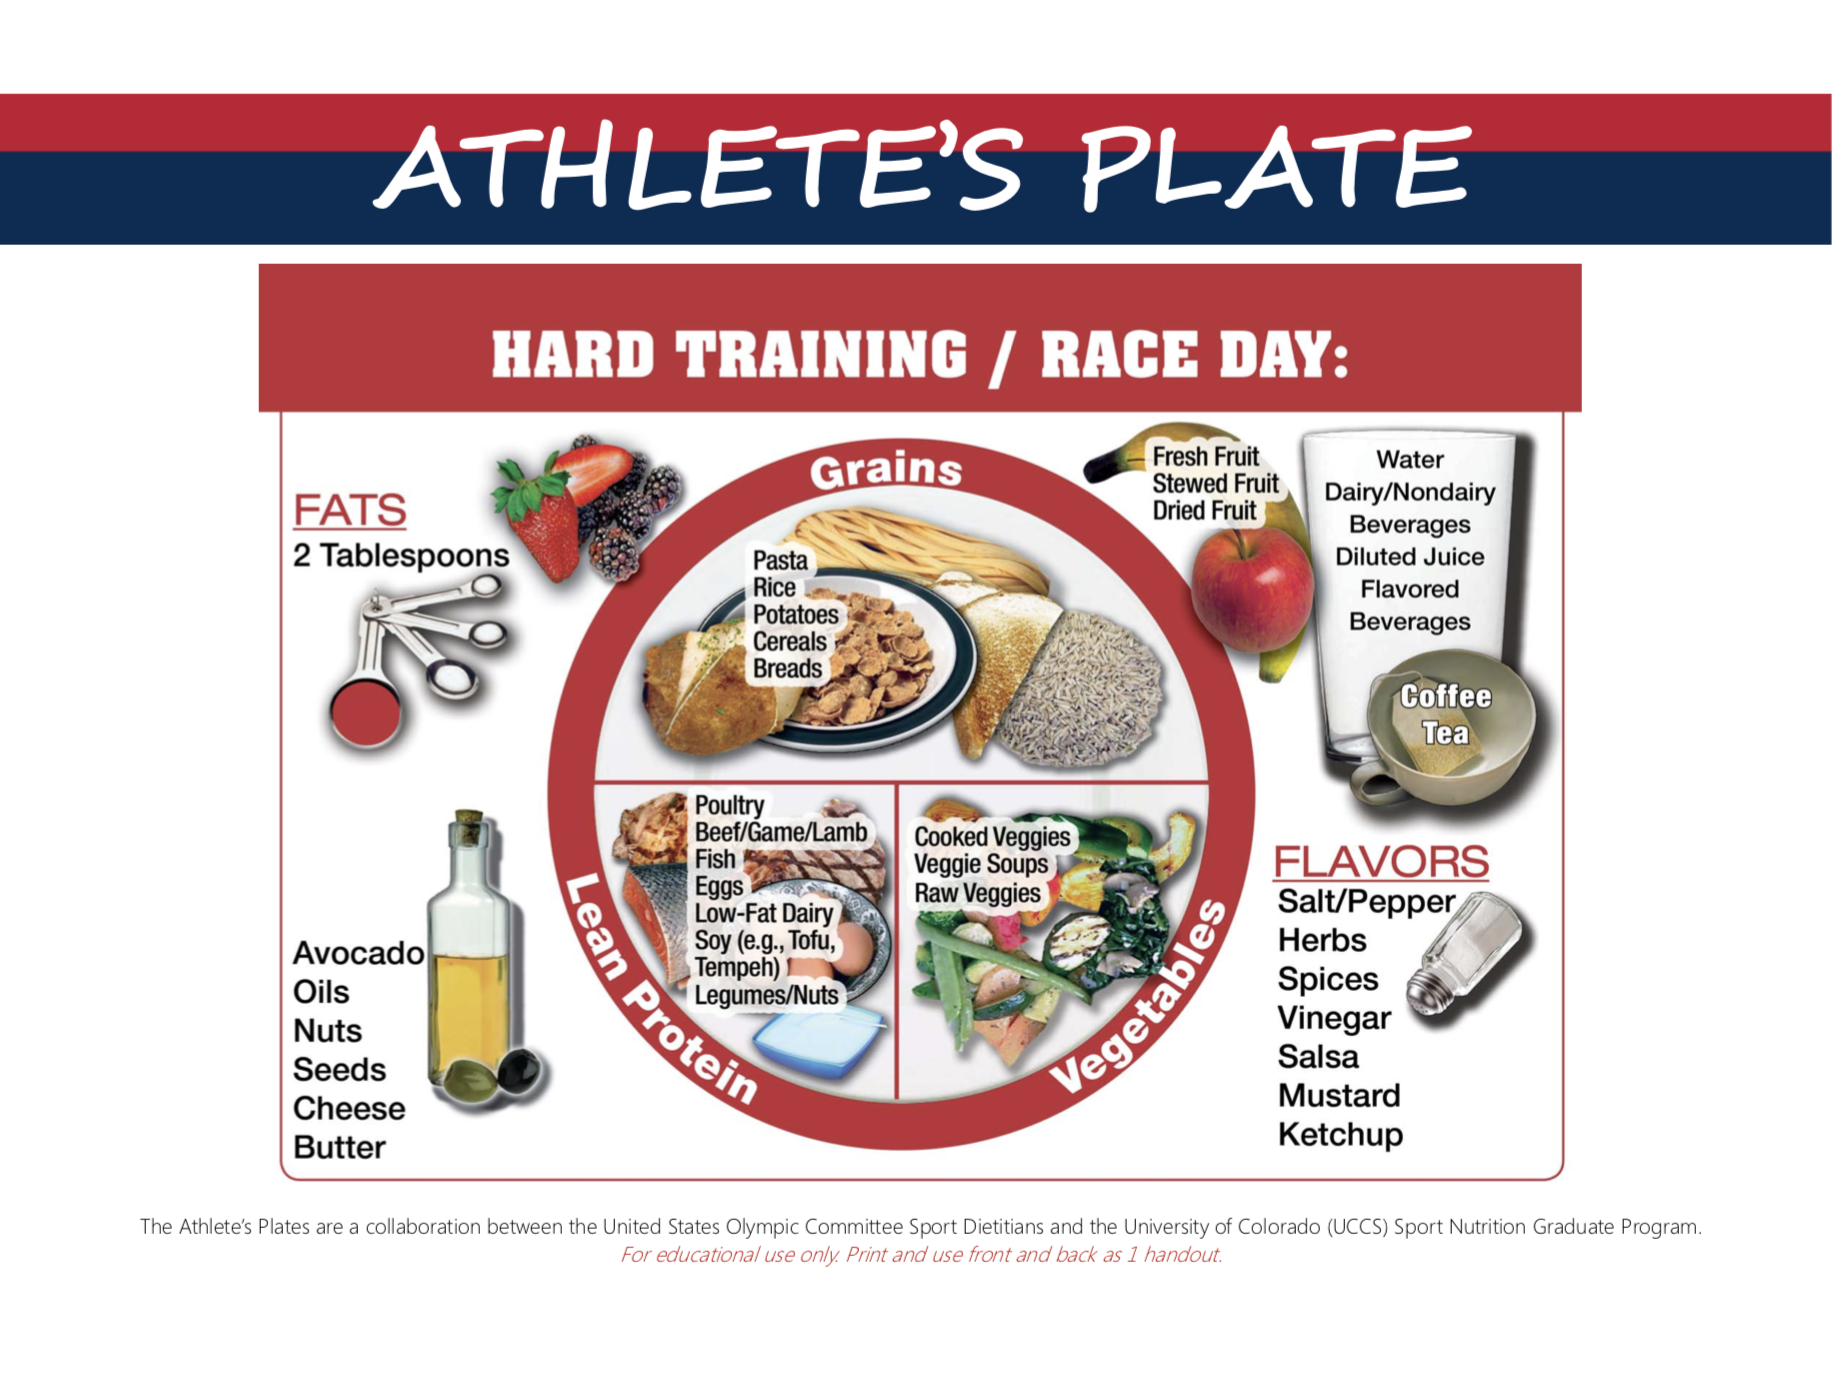 This Athlete's Plate is a product of the United States Olympic Committee (USOC) Sports Dietitians, and the University of Colorado (UCCS) Sports Nutrition Graduate Program.